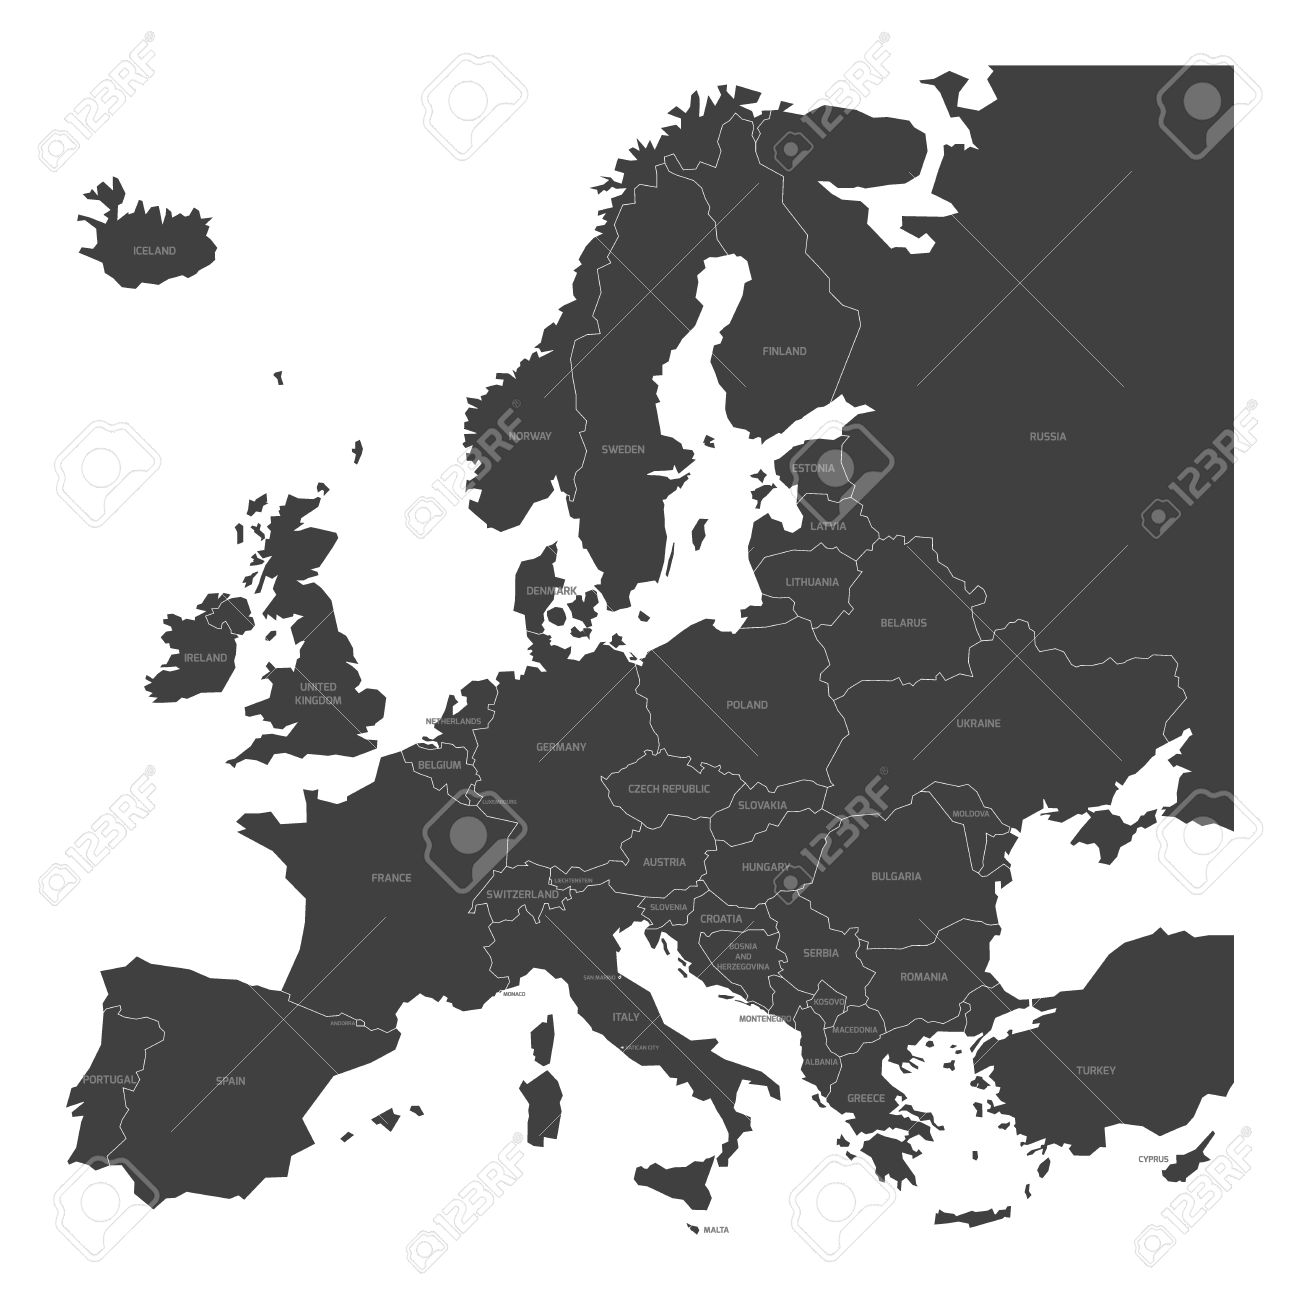 Map of europe with names of sovereign countries ministates map of europe with names of sovereign countries ministates included simplified dark grey vector gumiabroncs Images